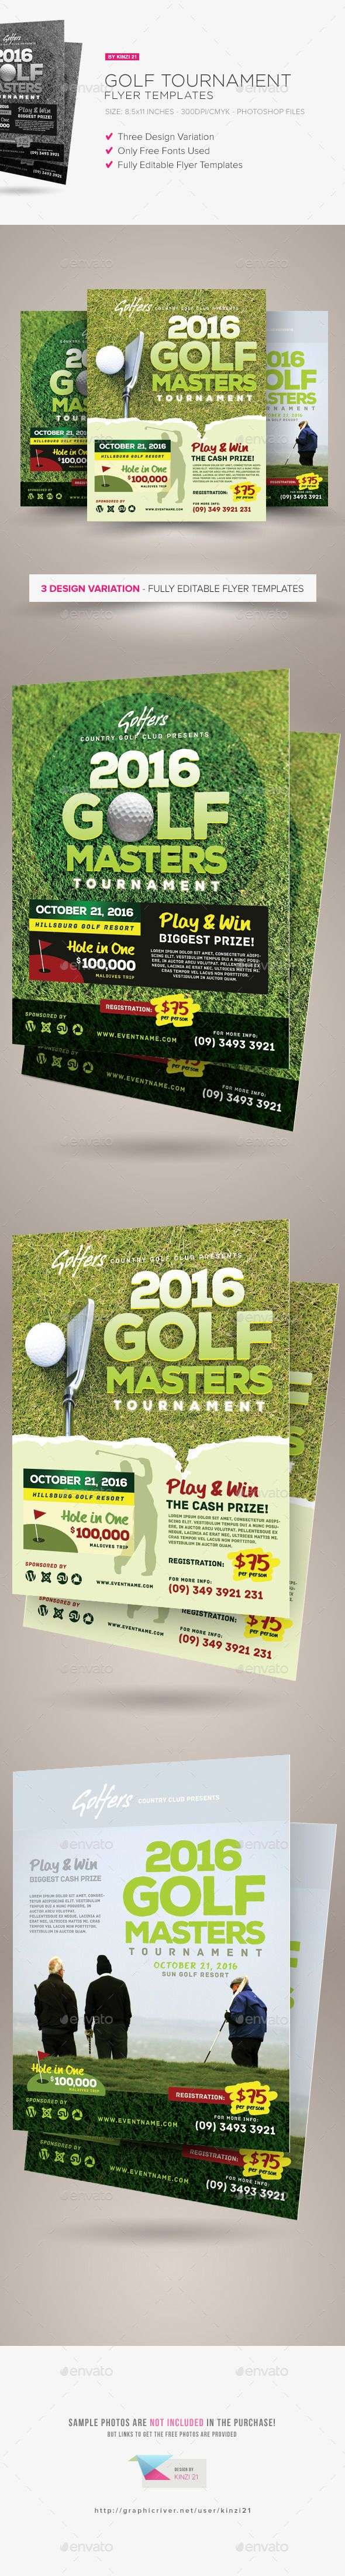 8 best golf poster ideas images on pinterest golf invitation cards and flyer template. Black Bedroom Furniture Sets. Home Design Ideas